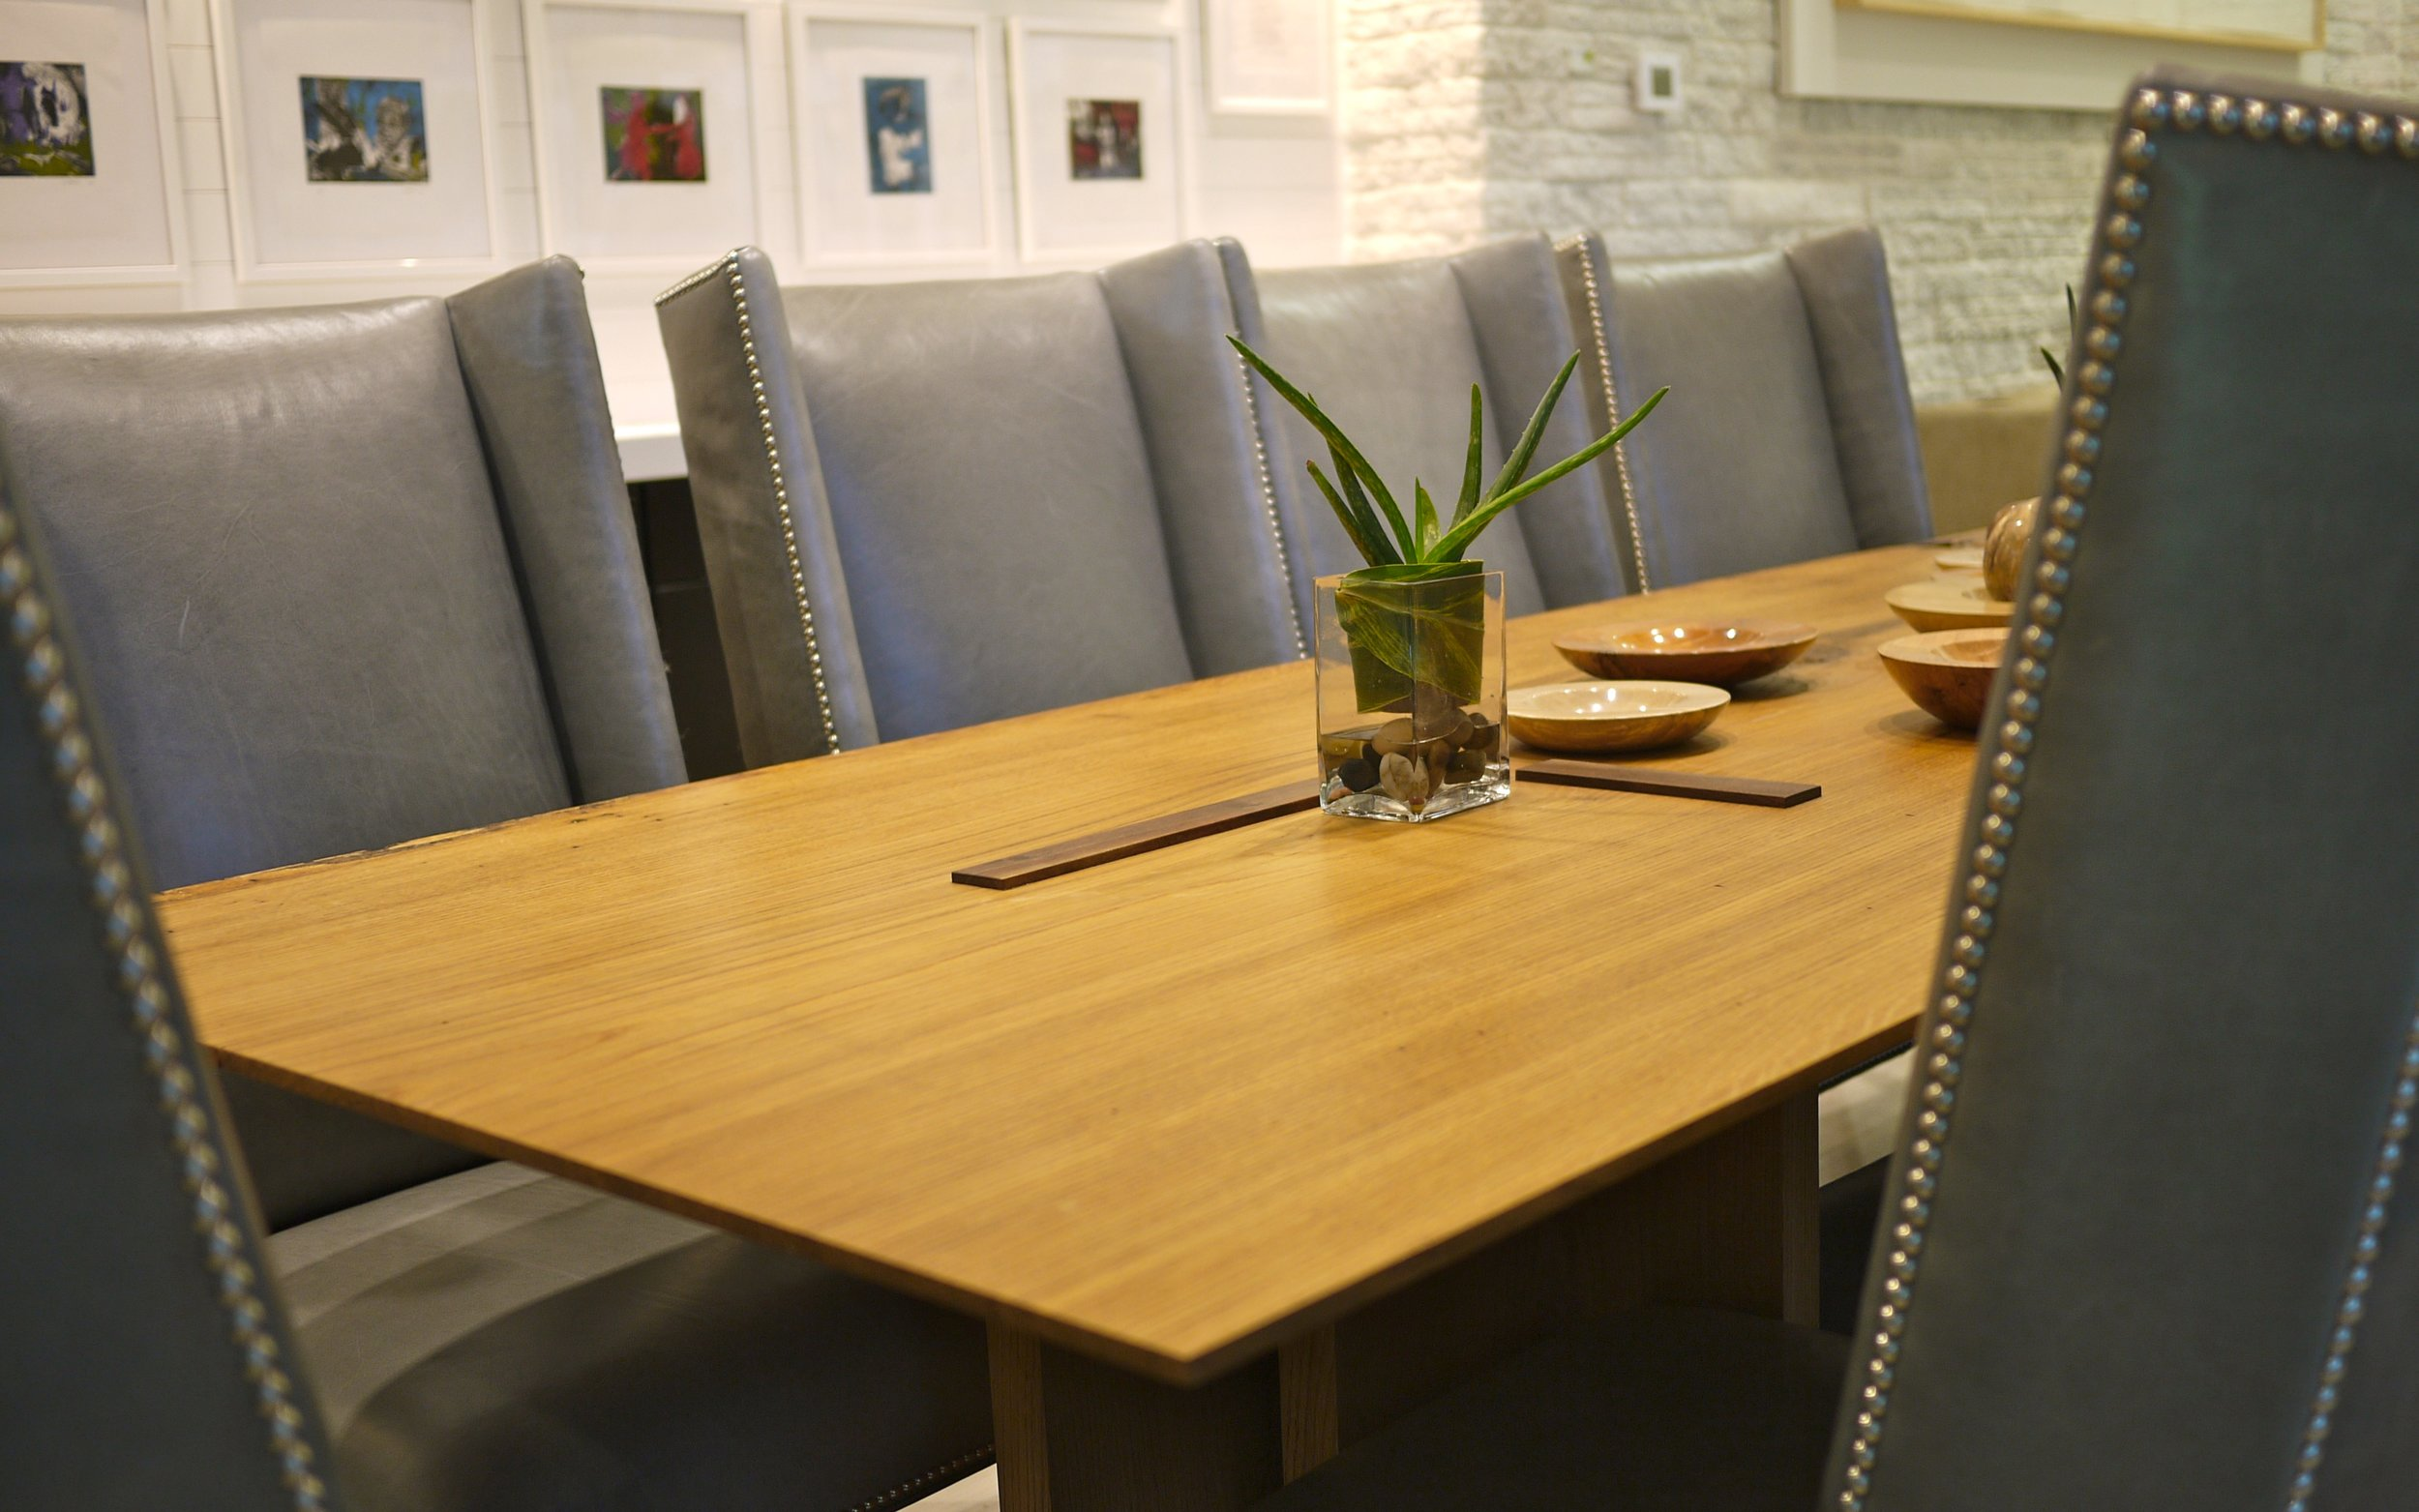 9dining-tables-from-Aperture-Full-Size 989.jpg